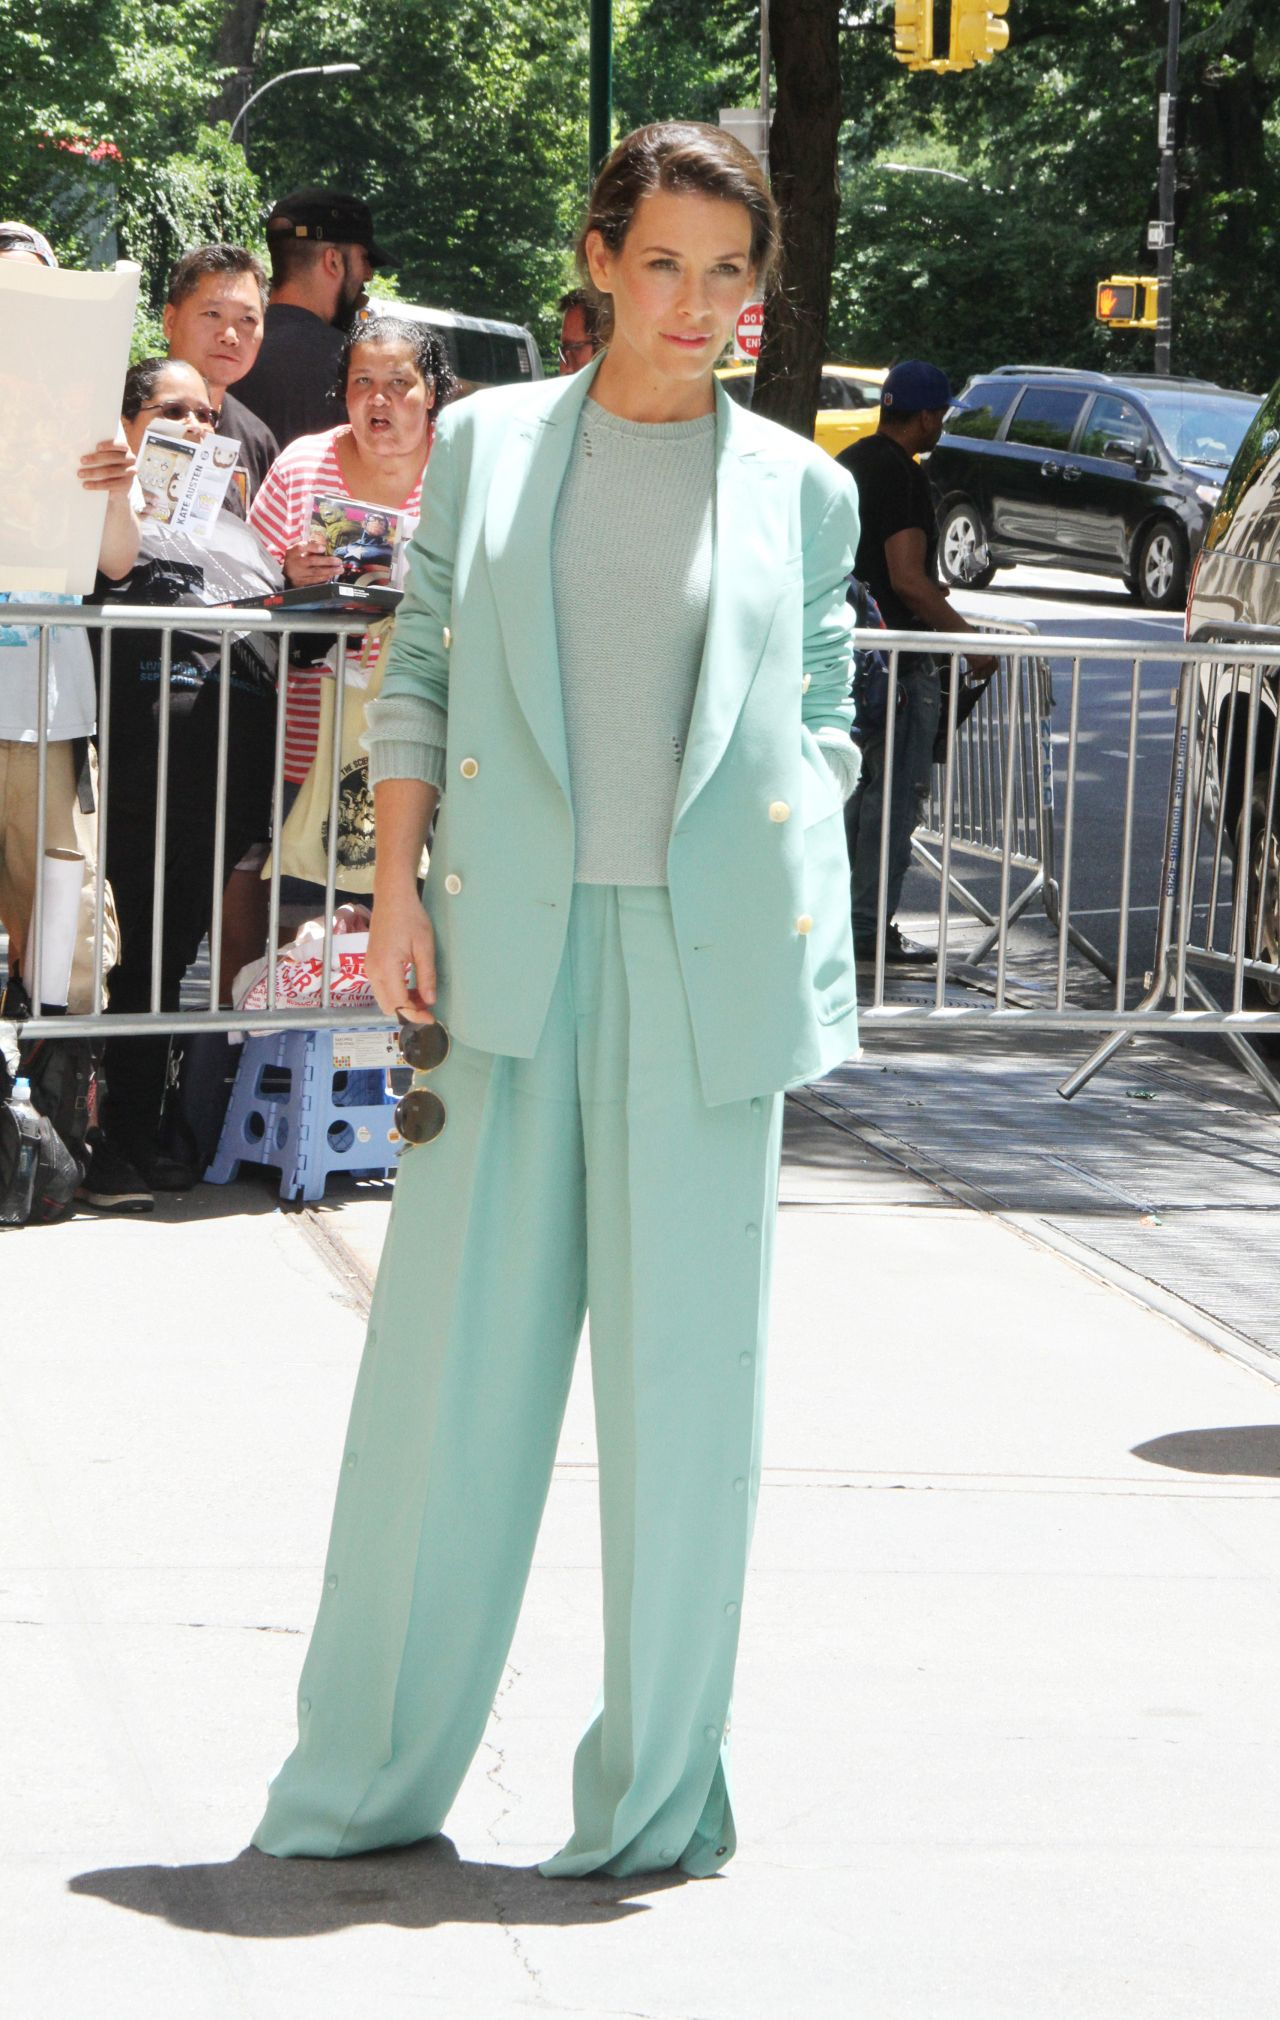 https://celebmafia.com/wp-content/uploads/2018/06/evangeline-lilly-at-the-view-in-nyc-06-21-2018-9.jpg